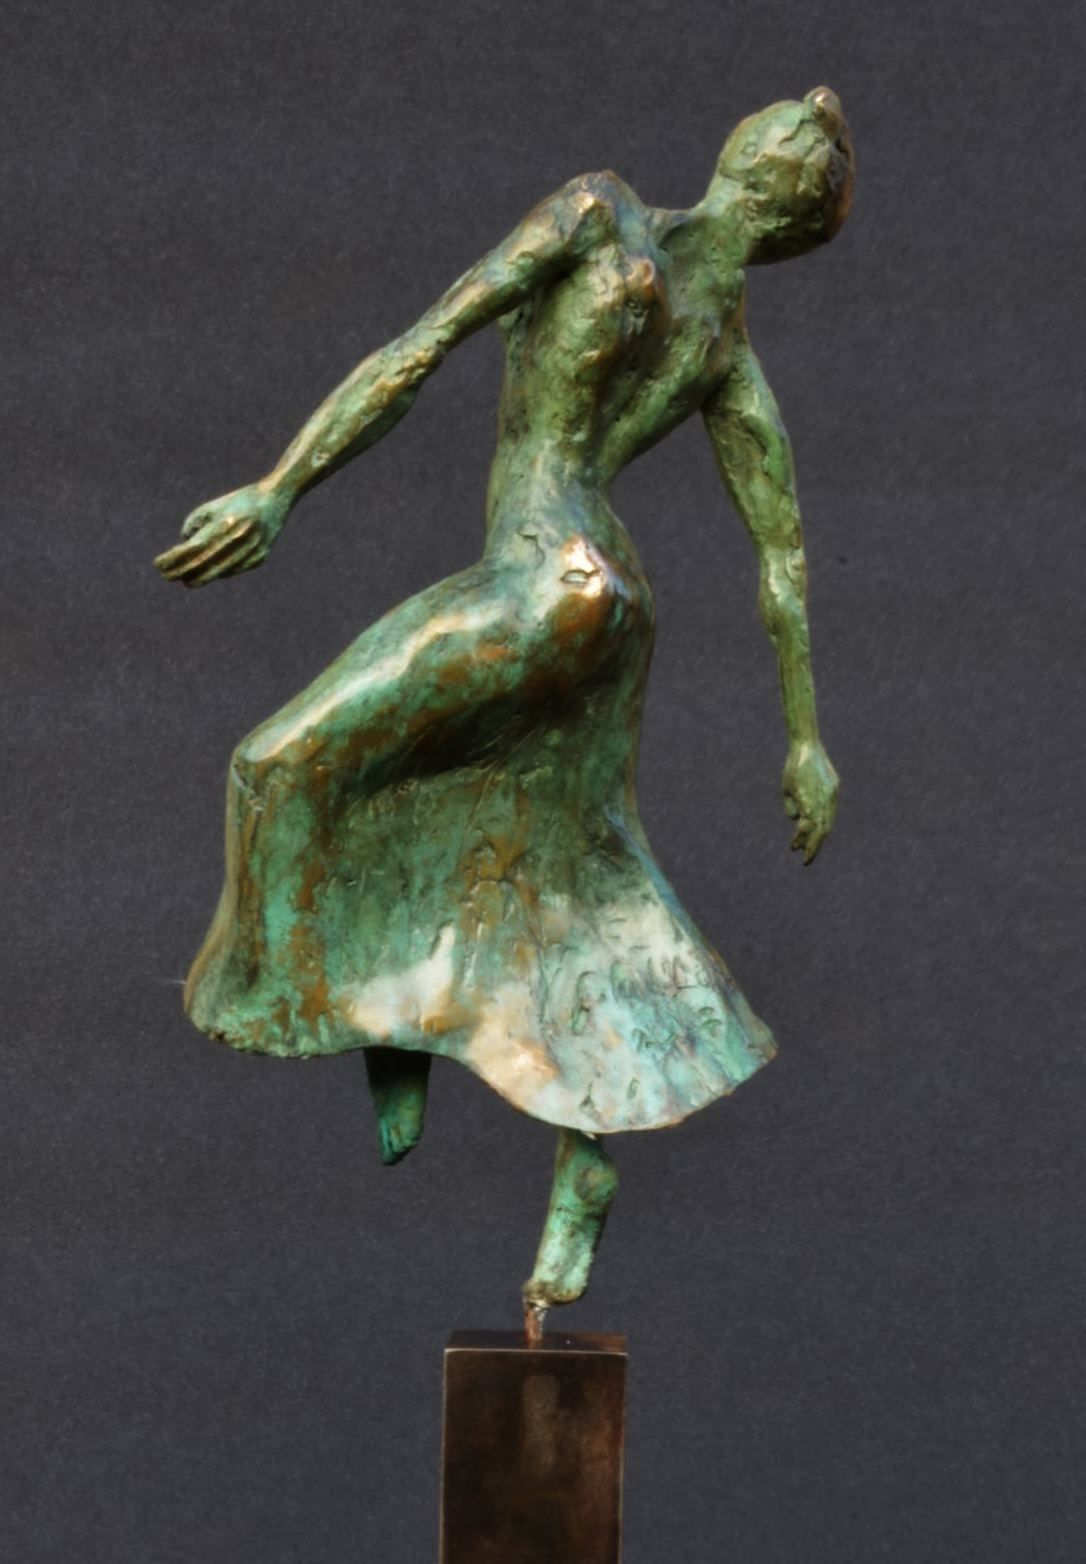 Modern dancer II,Yann Guillon,Sculpture, detail 1